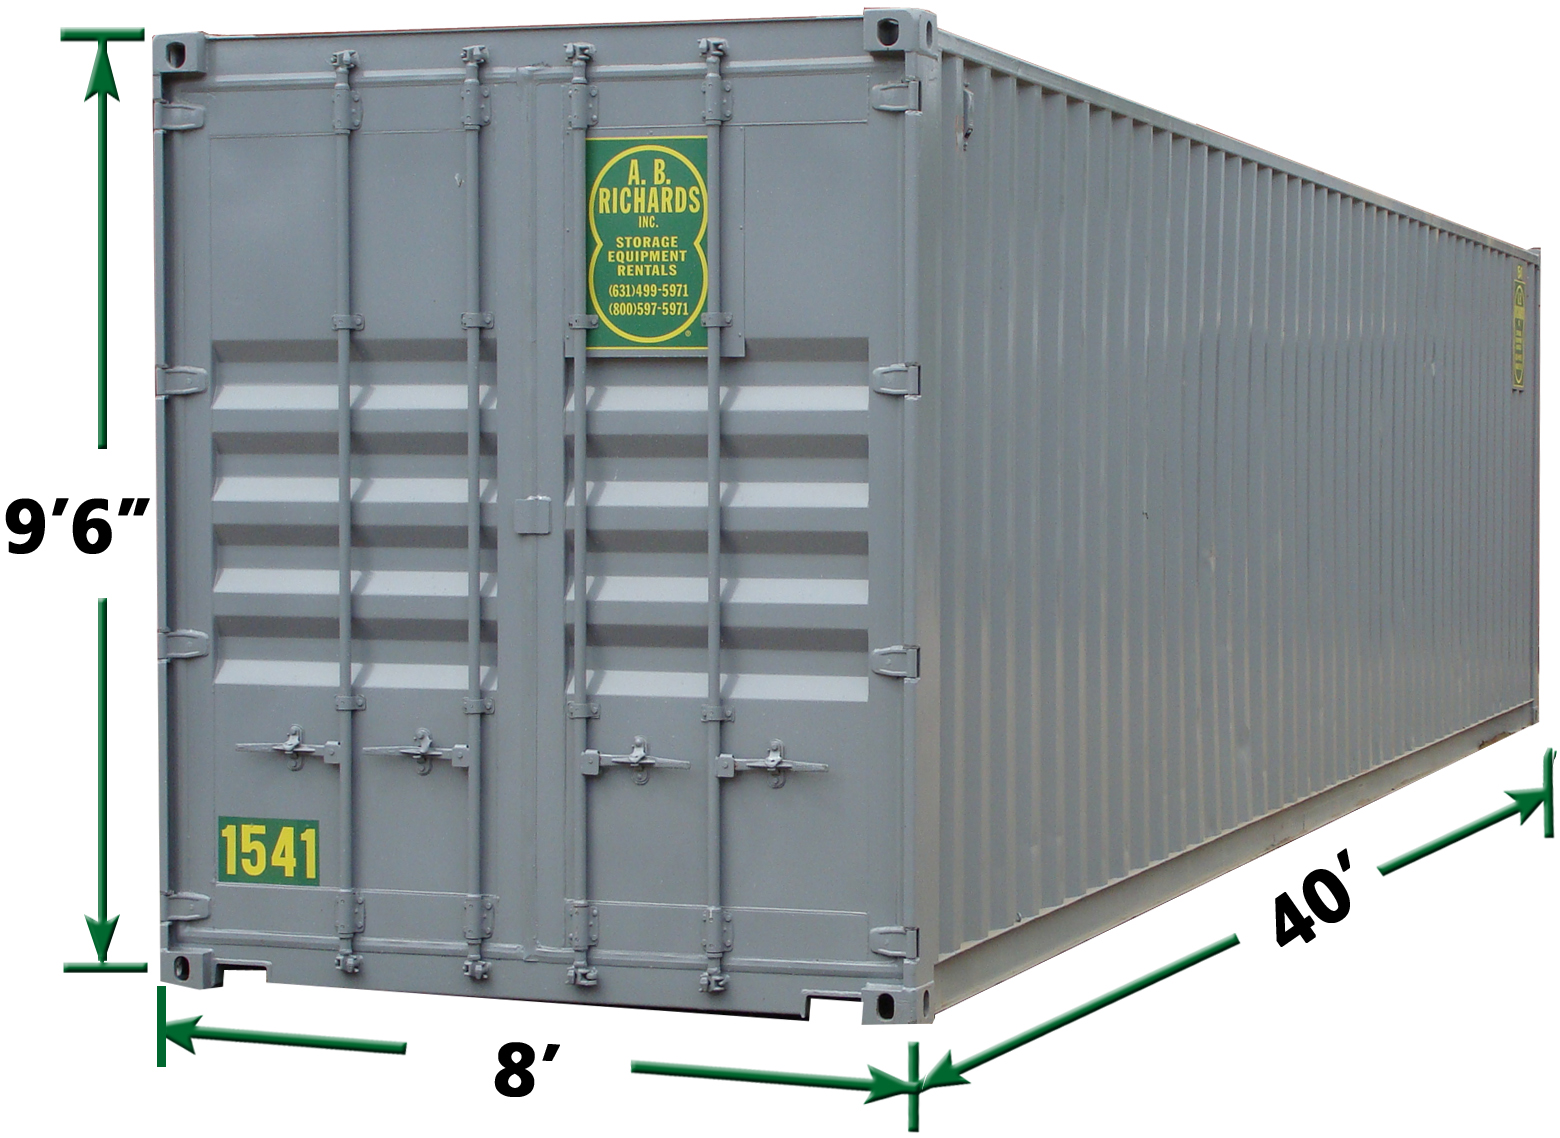 40-Foot Jumbo Commercial Storage Containers for Retail Locations by A.B Richards